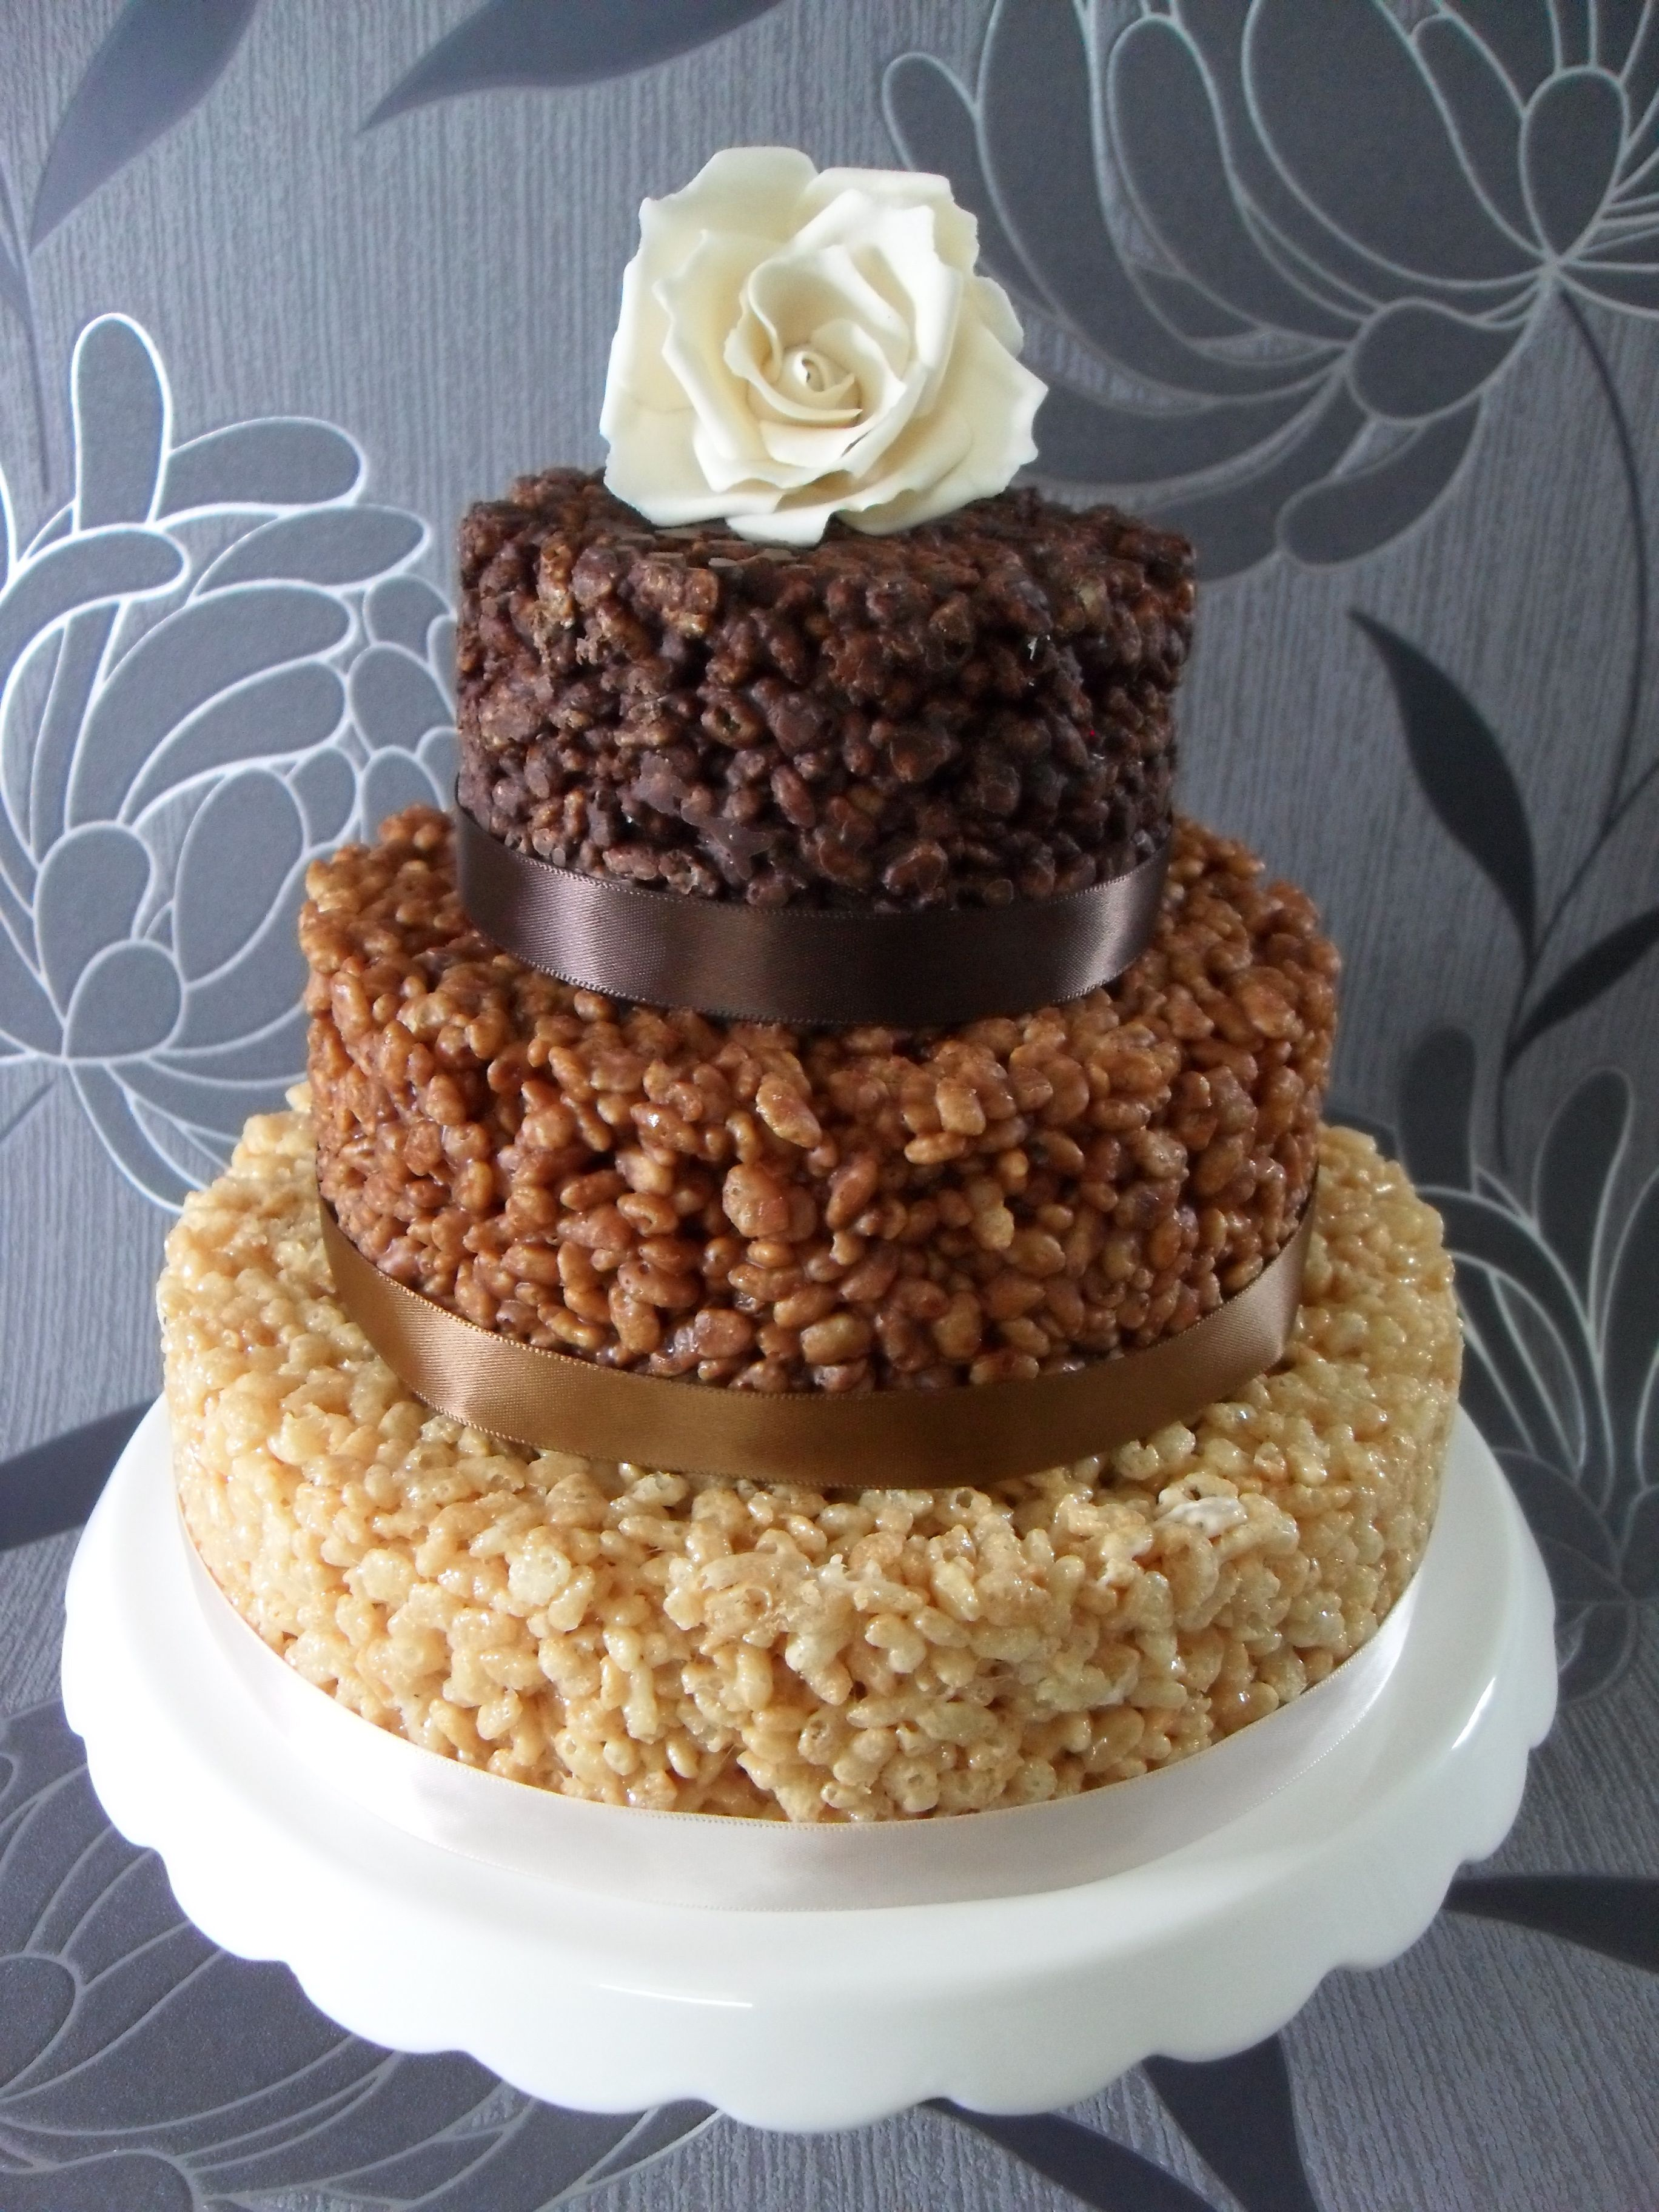 Nice Wedding Cake Prices Thick Wedding Cakes With Cupcakes Flat Wedding Cake Frosting Wood Wedding Cake Youthful A Wedding Cake PurpleSafeway Wedding Cakes Rice Krispies And Puffed Wheat Tiered Wedding Cake | Loving Cakes ..